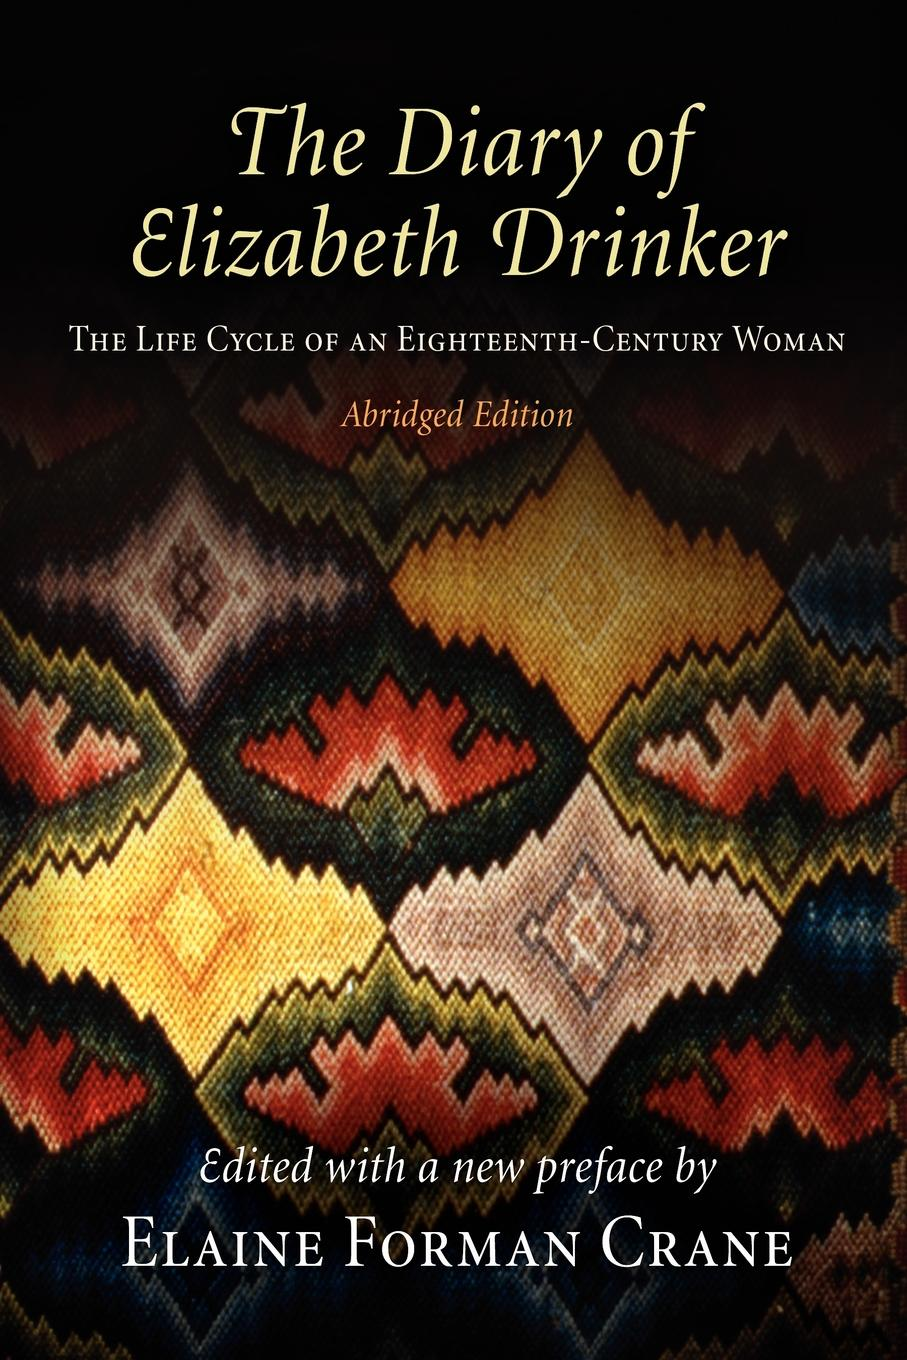 The Diary of Elizabeth Drinker The Life Cycle of an Eighteenth-Century Woman